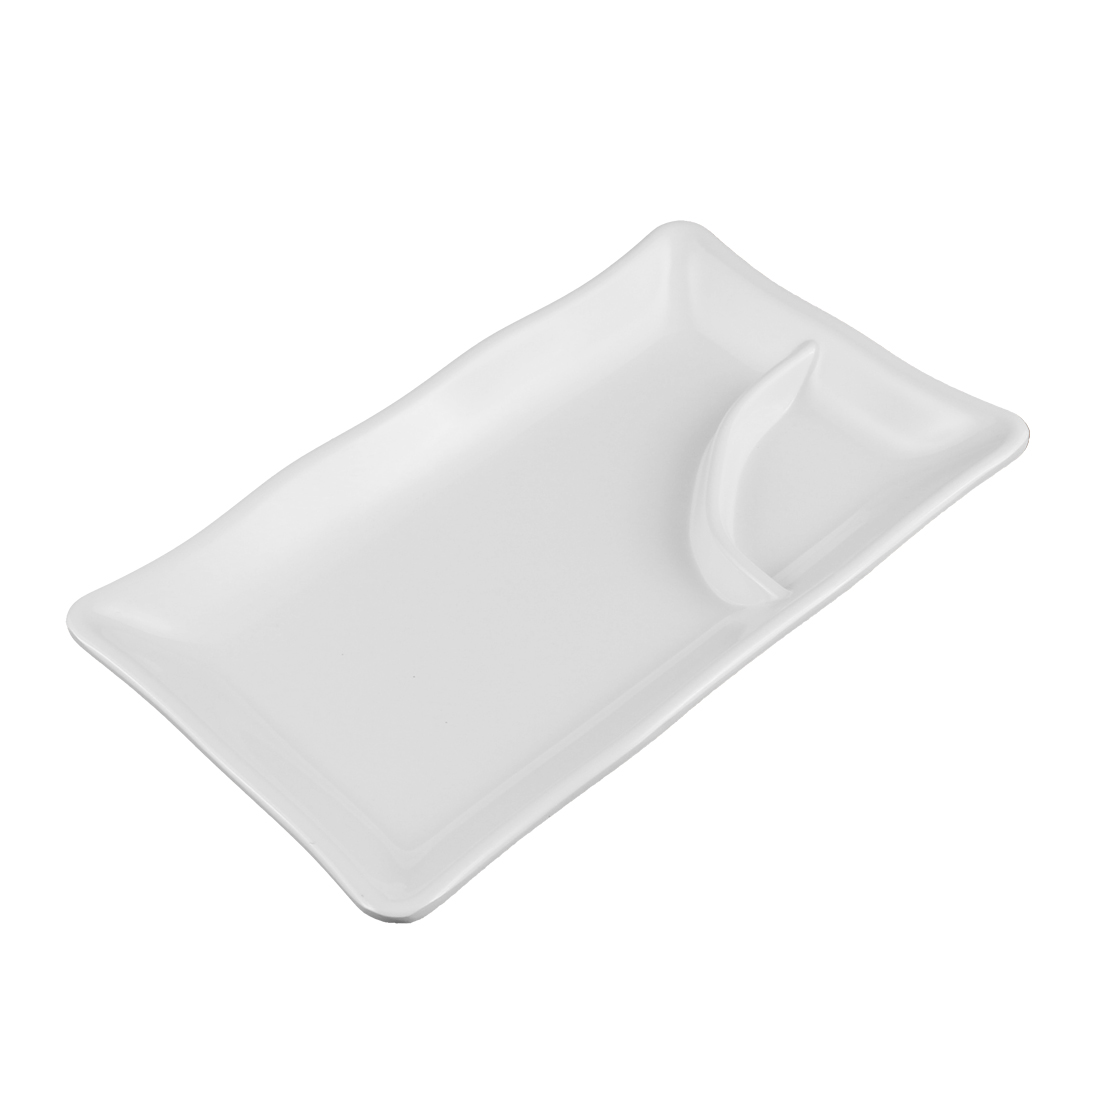 Plastic 2 Compartments Dumplings Sushi Sauce Mustard Dipping Dish Plate Off White